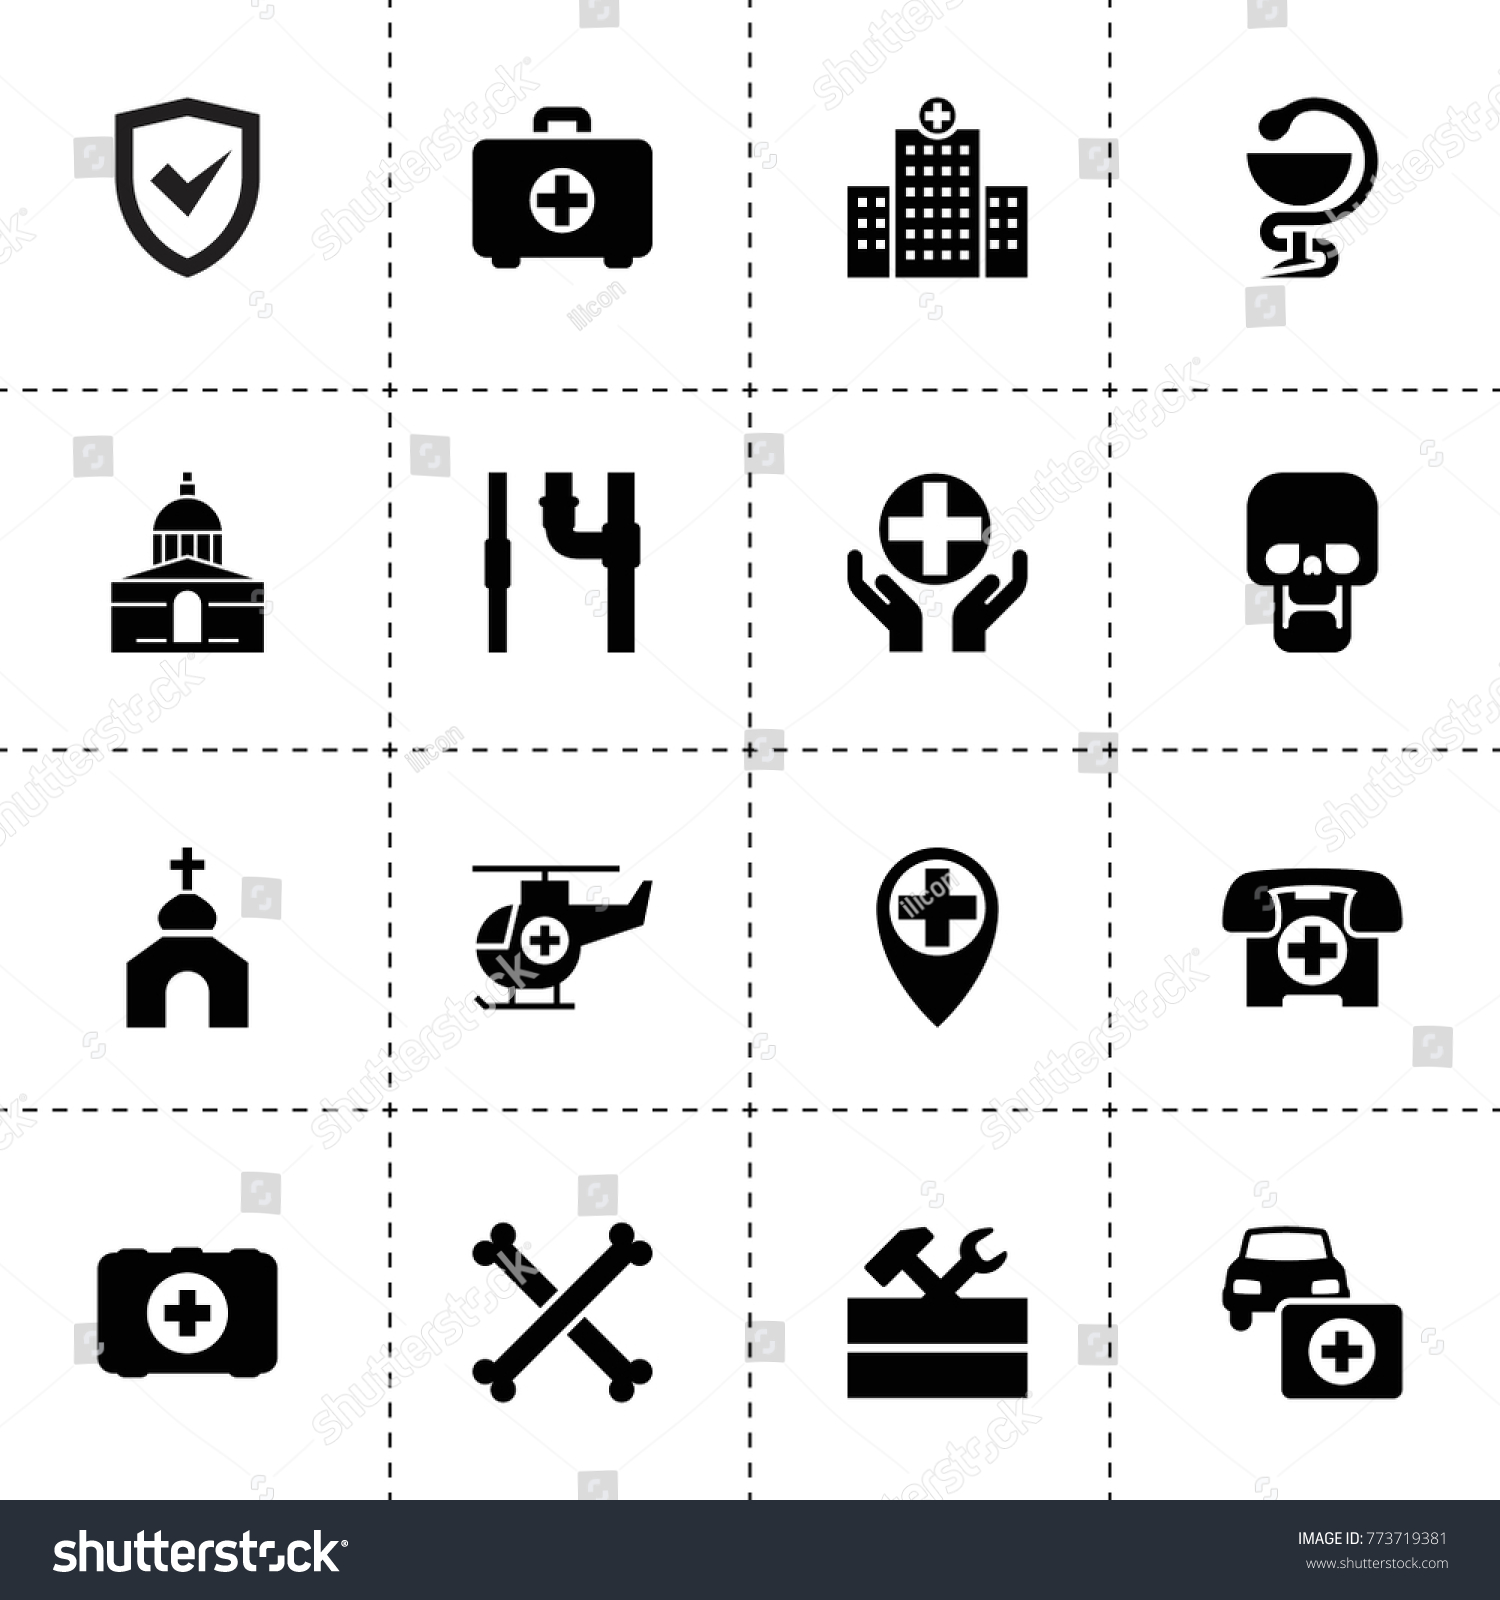 Cross Icons Vector Collection Filled Cross Stock Vector Royalty